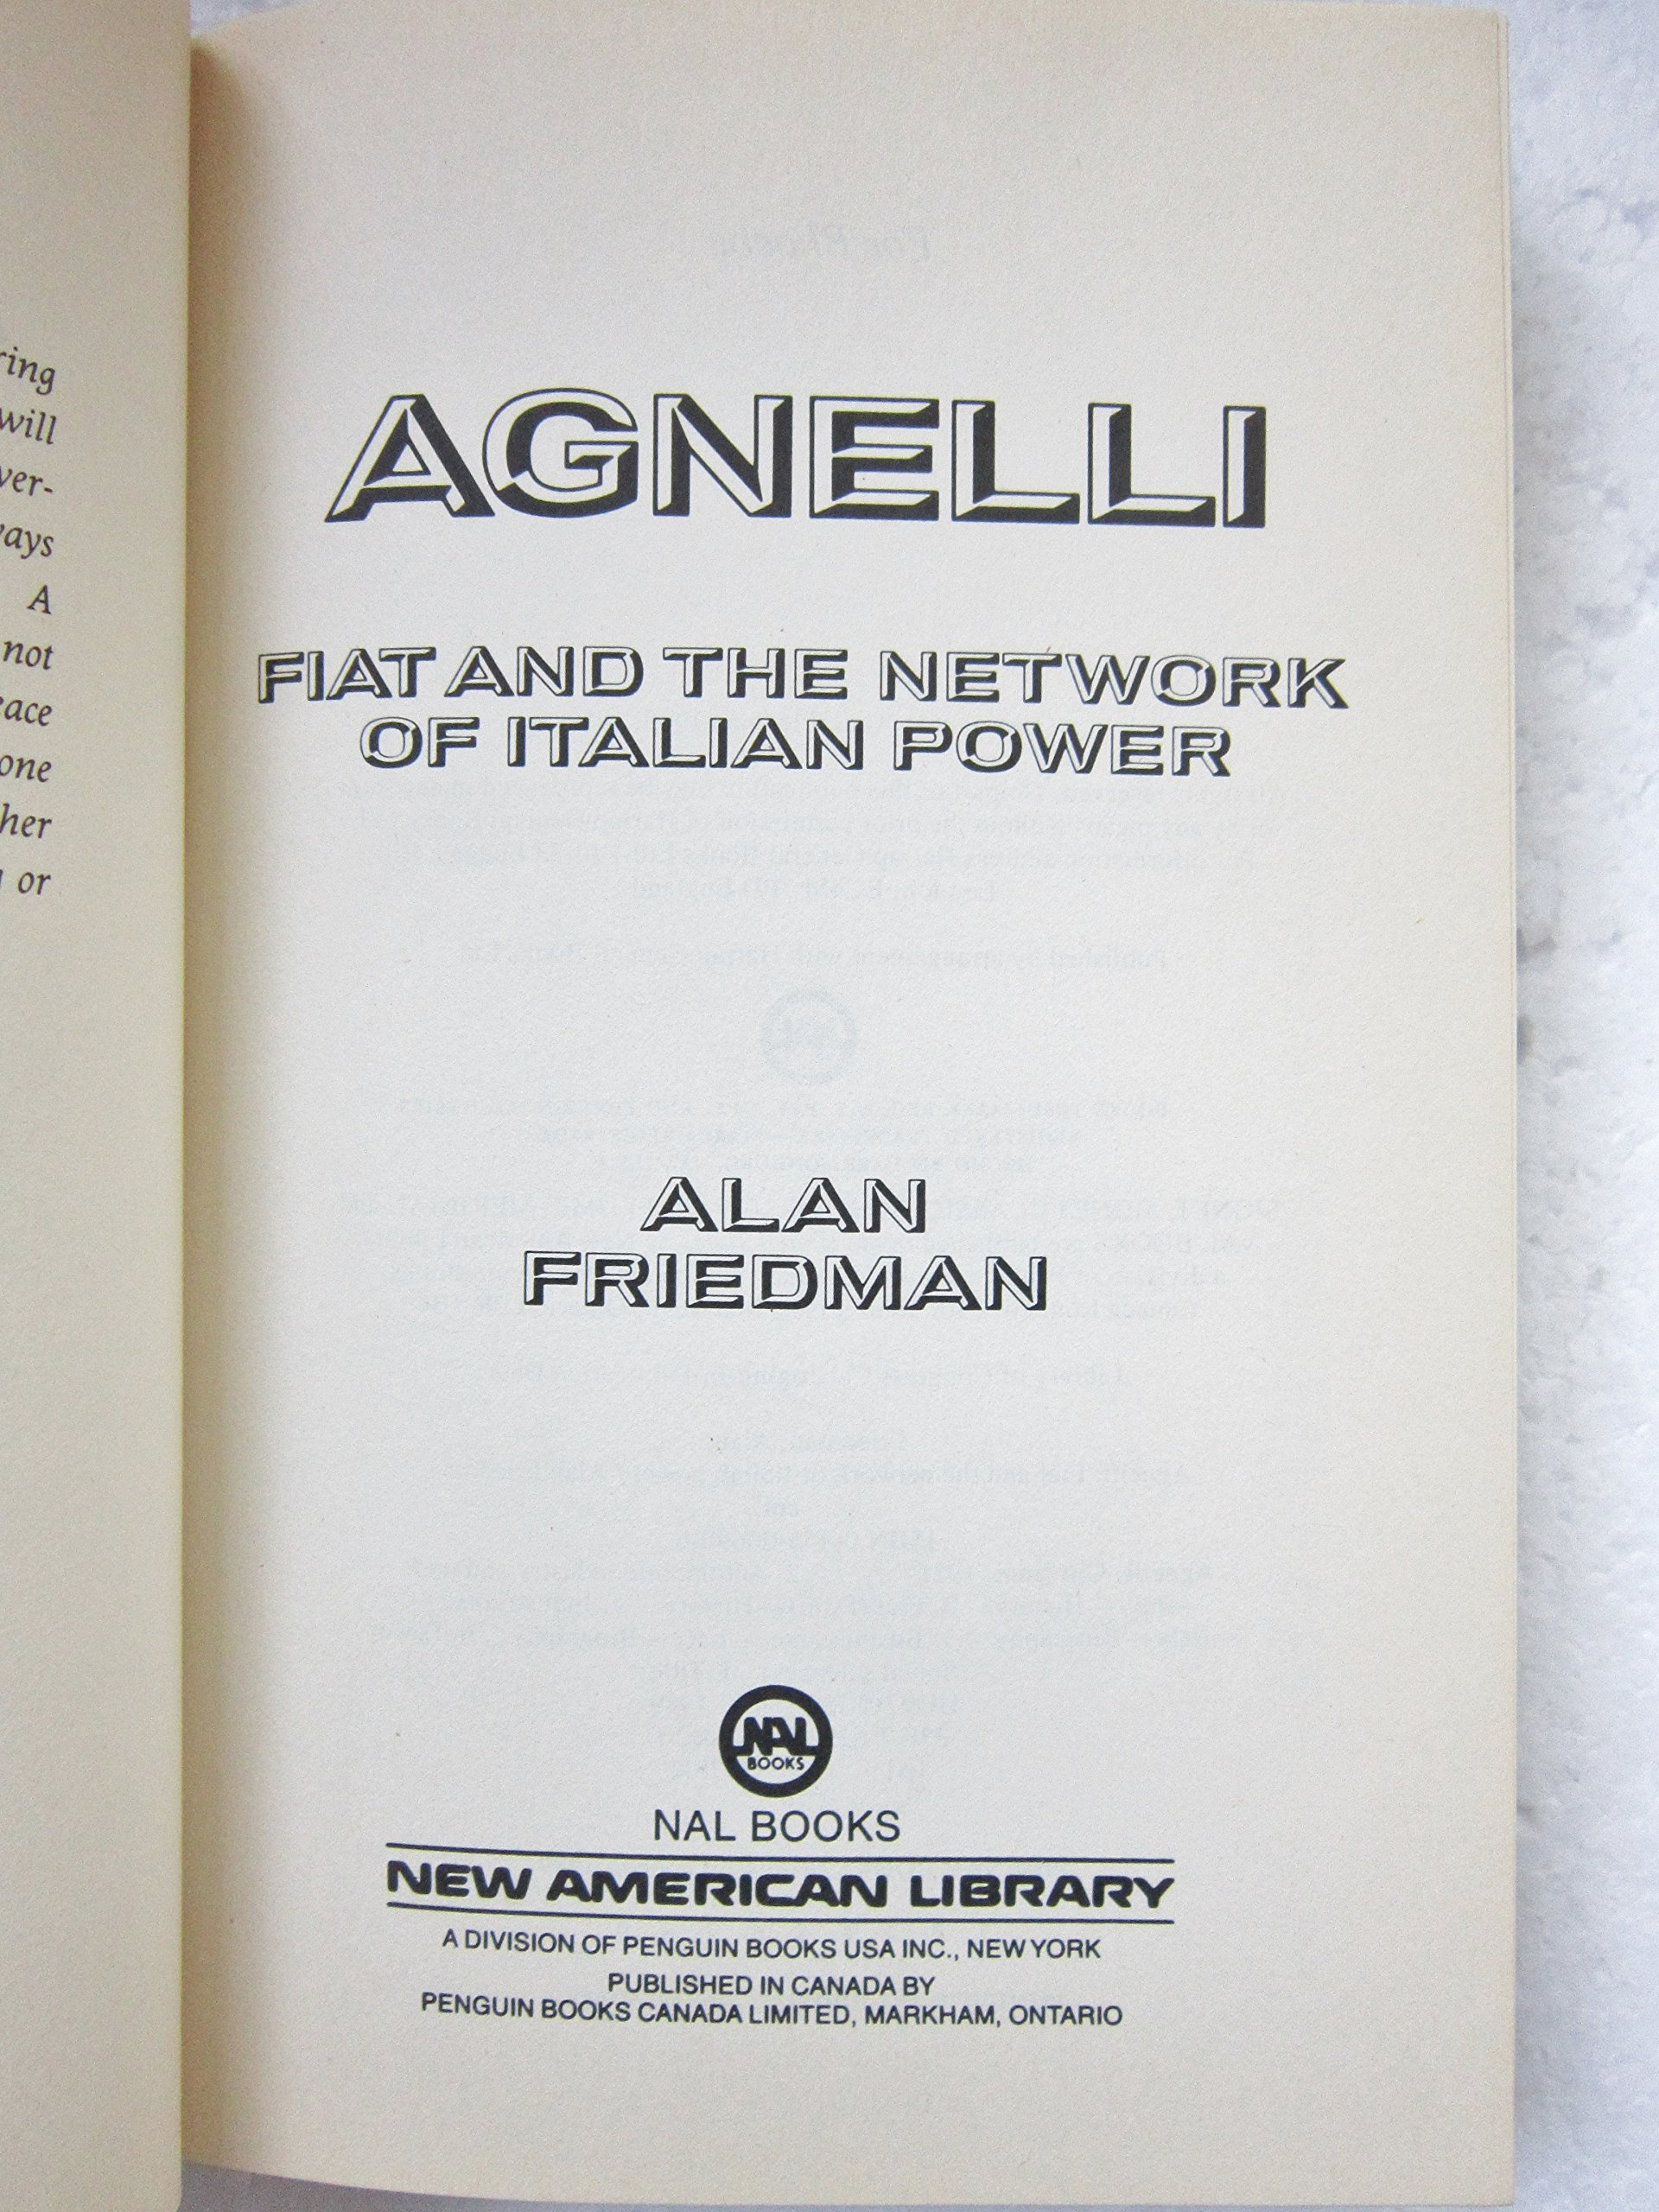 Agnelli fiat and the network of italian power alan friedman agnelli fiat and the network of italian power alan friedman 9780453006903 amazon books fandeluxe Choice Image